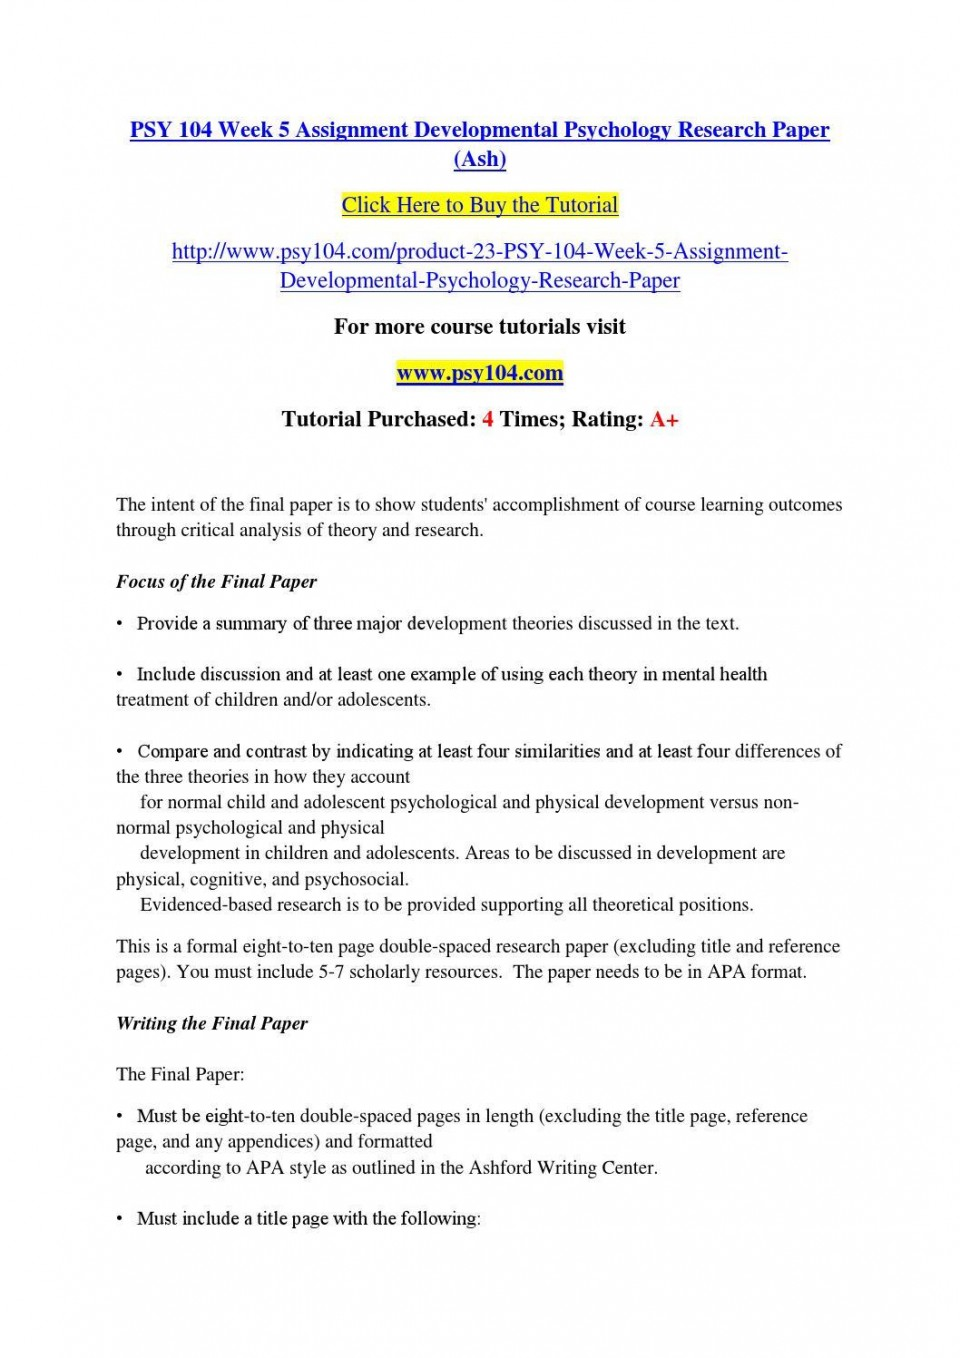 017 Developmental Psychology Essay Ideas Structure Psychological20ent Paper Topics Pdf20 Shocking Research Topic For College Students Computer Science Nursing 960